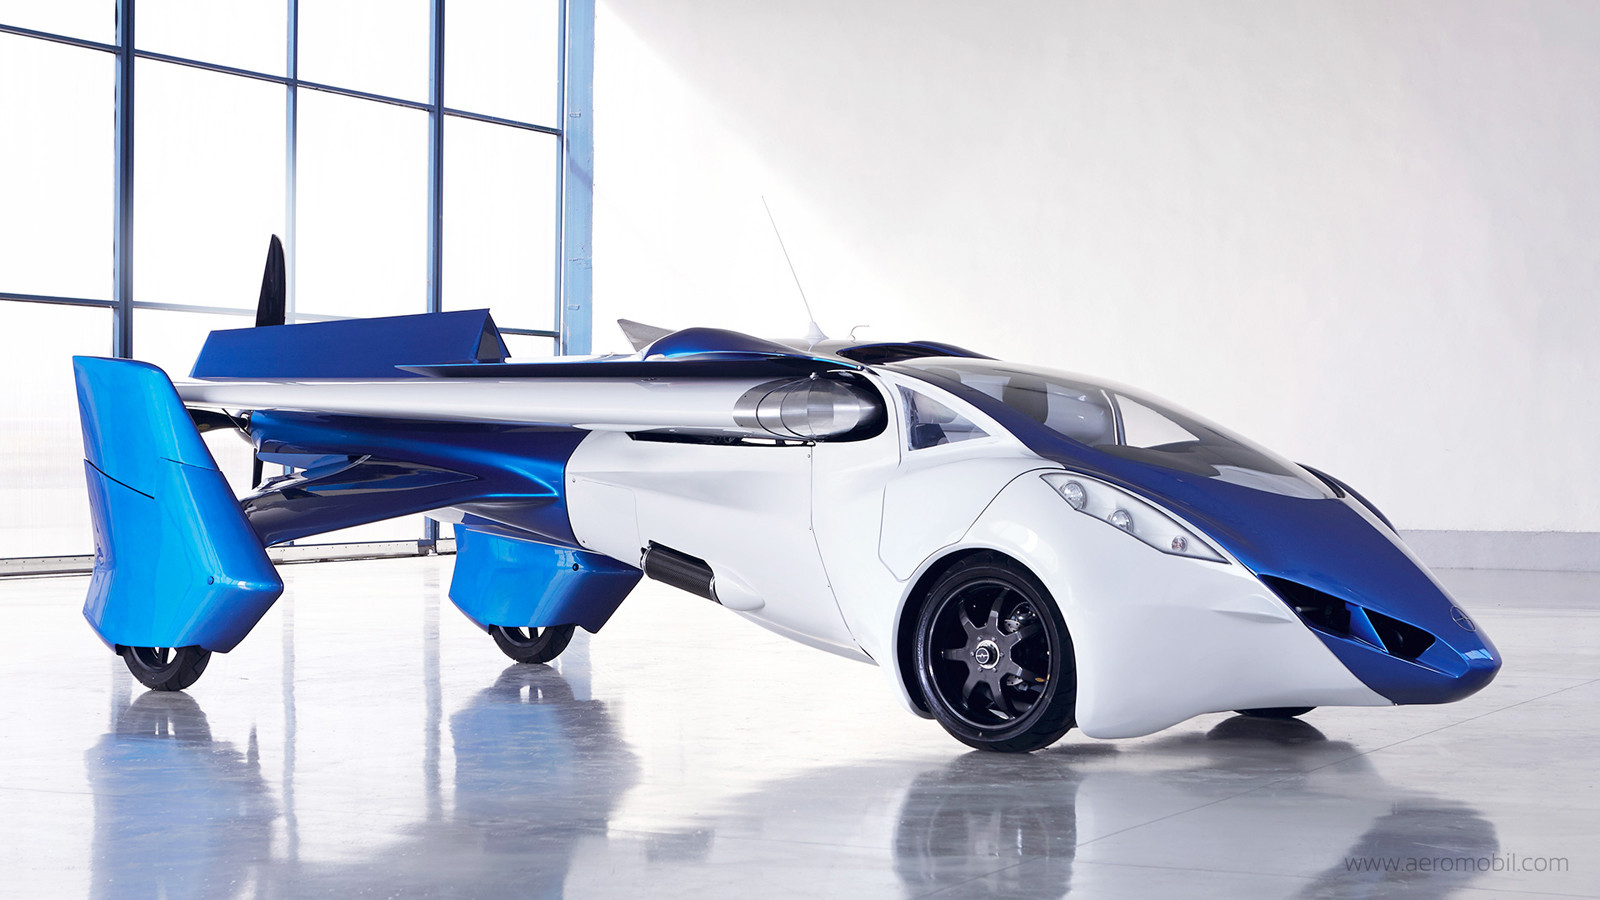 SXSW: AeroMobil aims in 2 years to have wealthy car buyers flying high